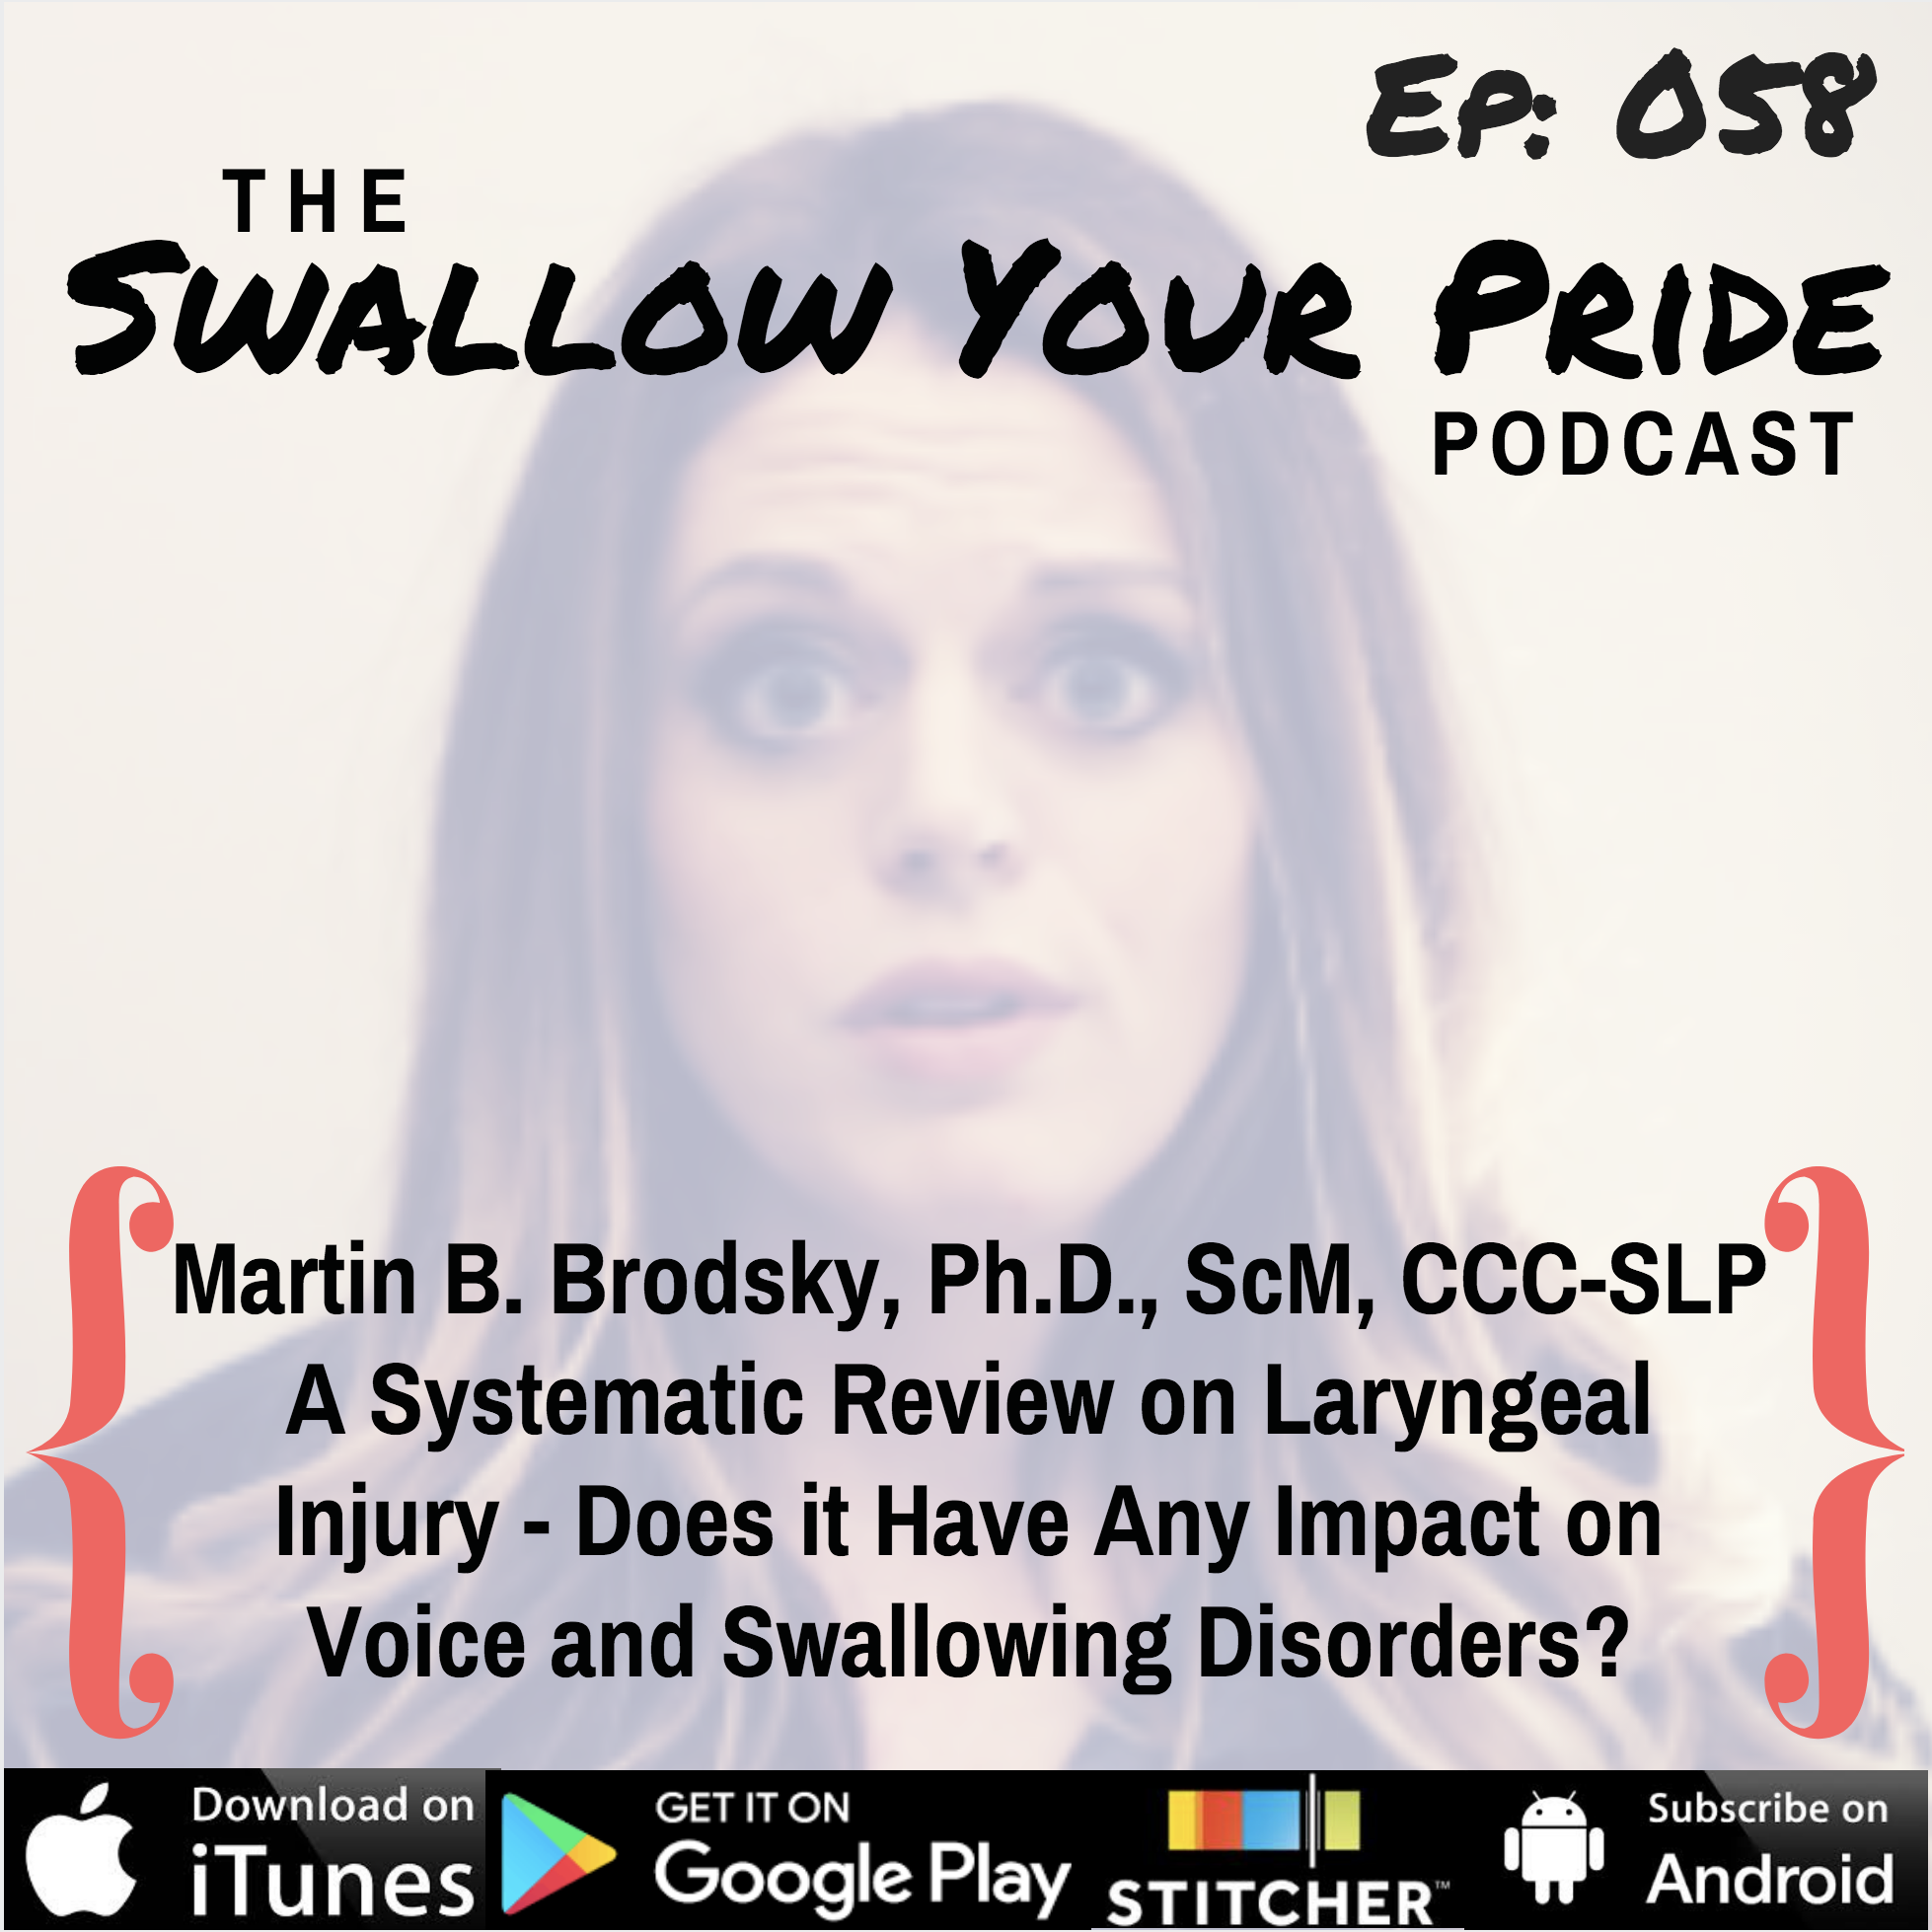 058 – Martin B. Brodsky, Ph.D., ScM, CCC-SLP – A Systematic Review on Laryngeal Injury – Does it Have Any Impact on Voice and Swallowing Disorders?